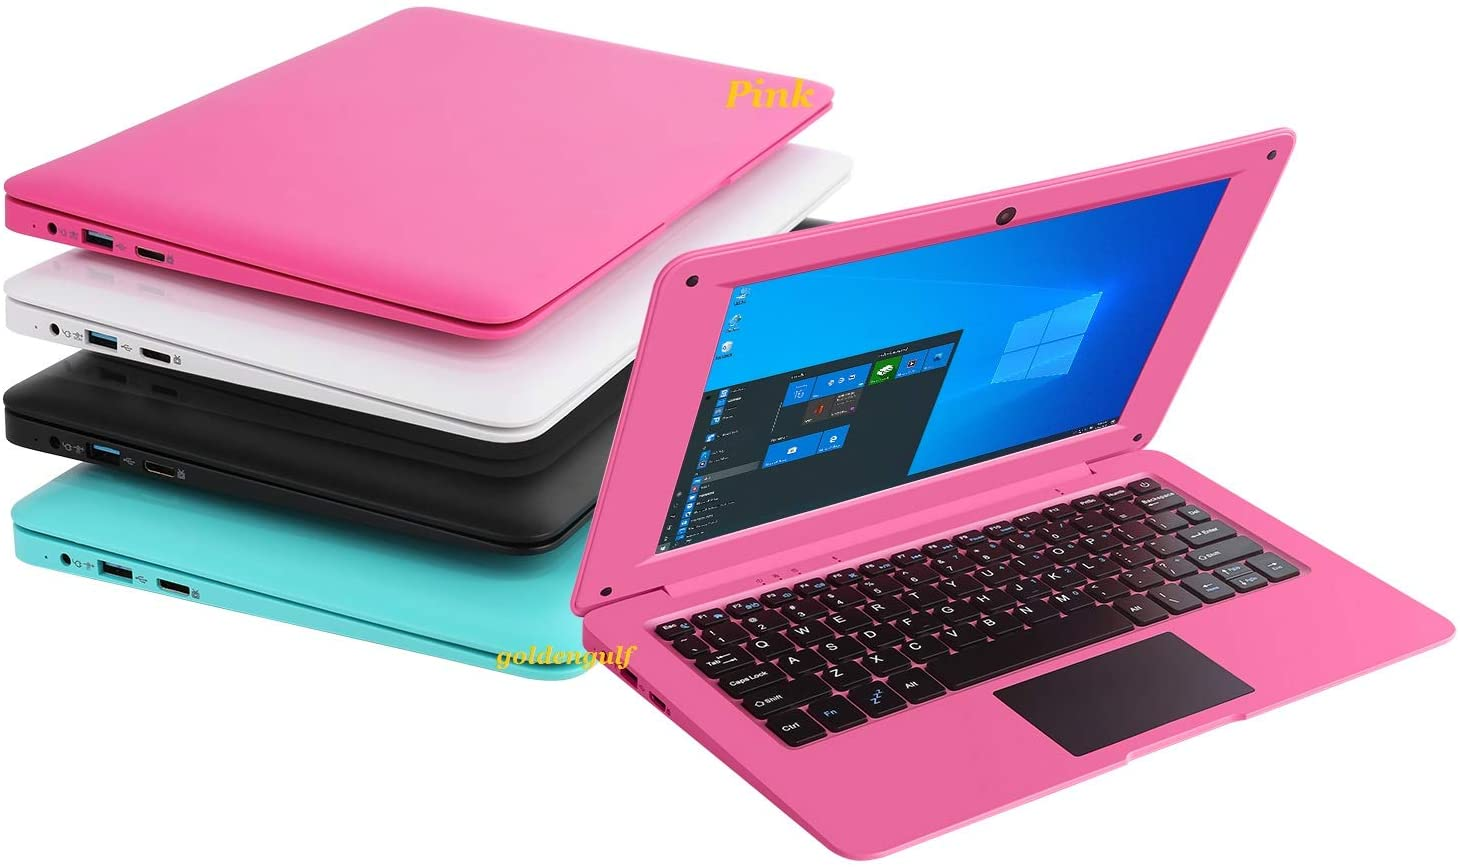 Goldengulf Windows 10 Computer Laptop Mini 10.1 Inch 32GB Ultra Thin and Light Netbook Intel Quad Core CPU PC HDMI WiFi USB Netflix YouTube (Pink)